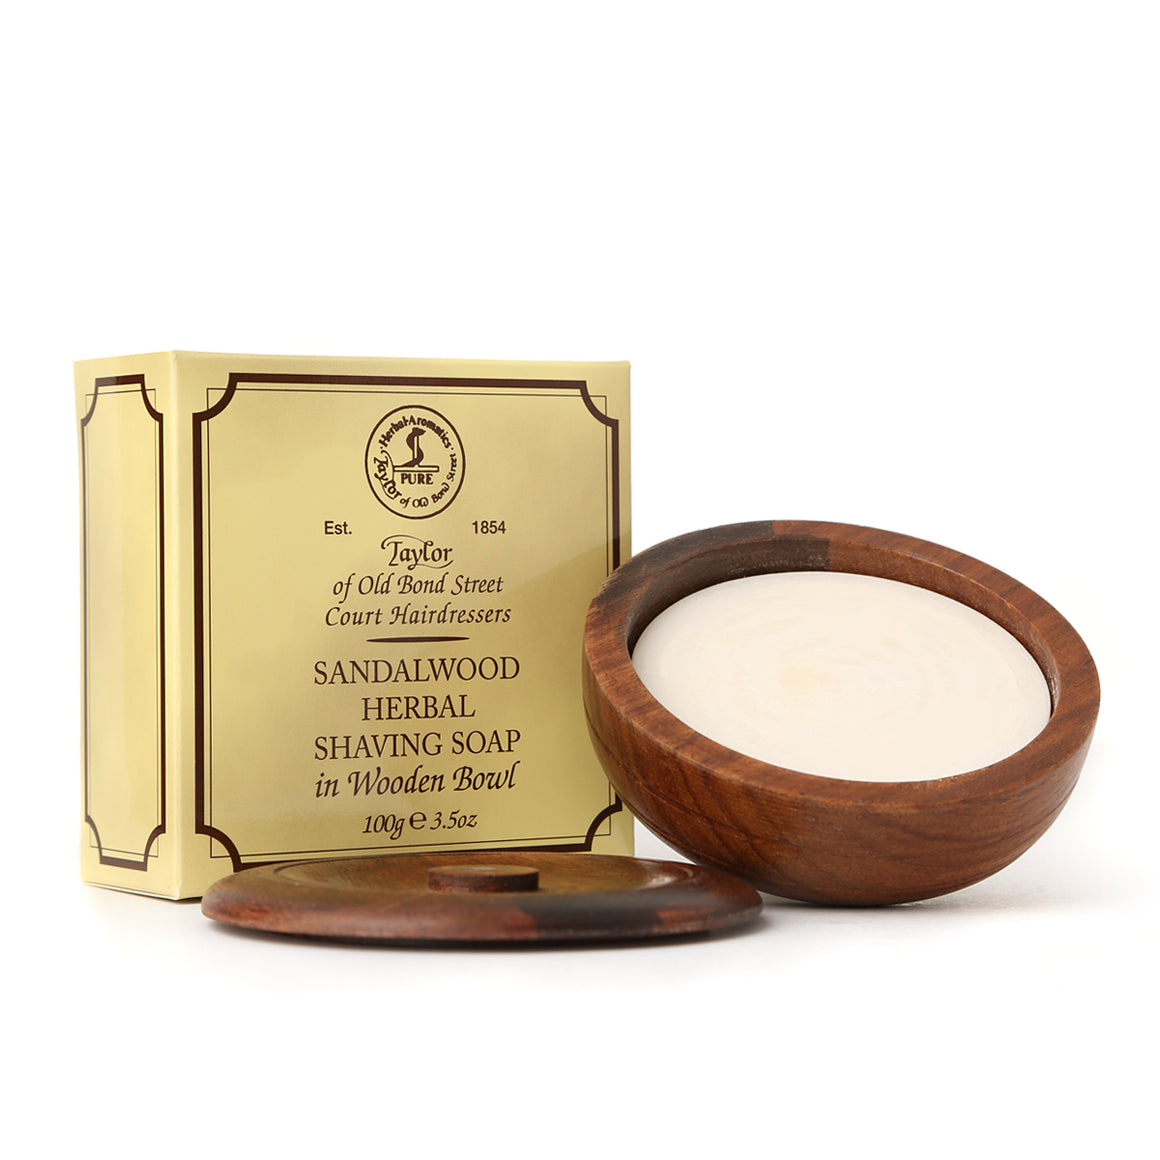 Sandalwood Shaving Soap in Wooden Bowl 100g